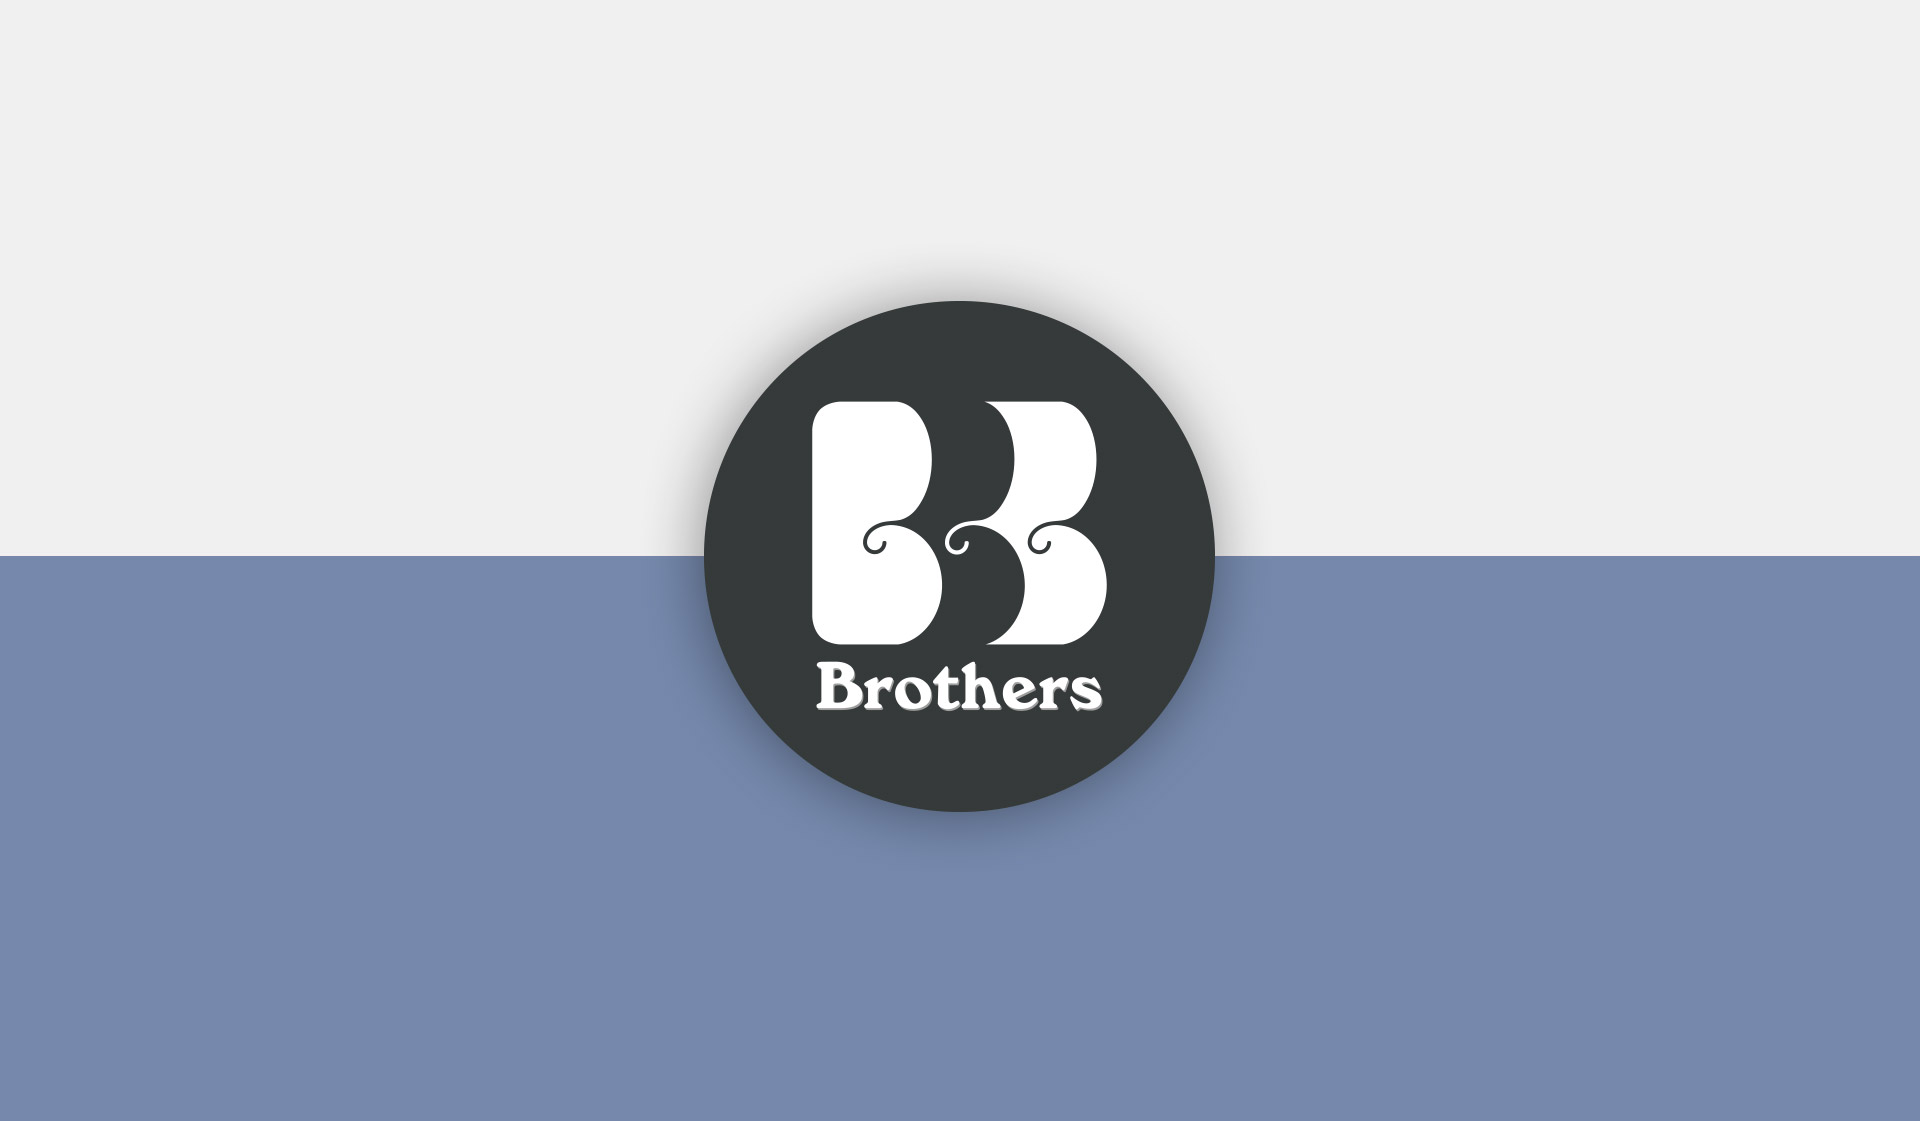 Brothers_logo_1920